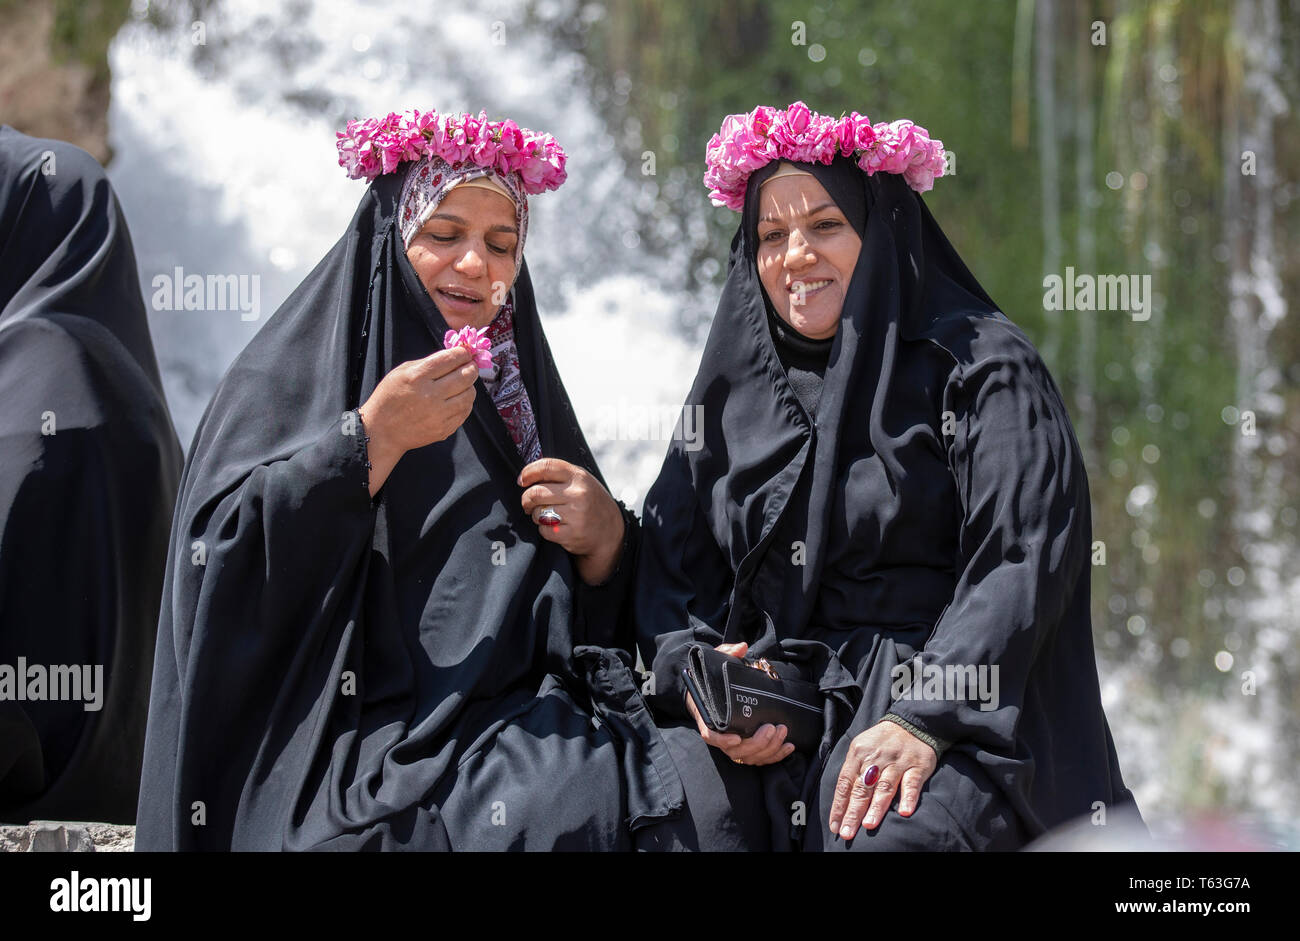 Kashan, Iran, 25th April 2019: iranian ladies with roses decorating their heads resting in front of a waterfall - Stock Image